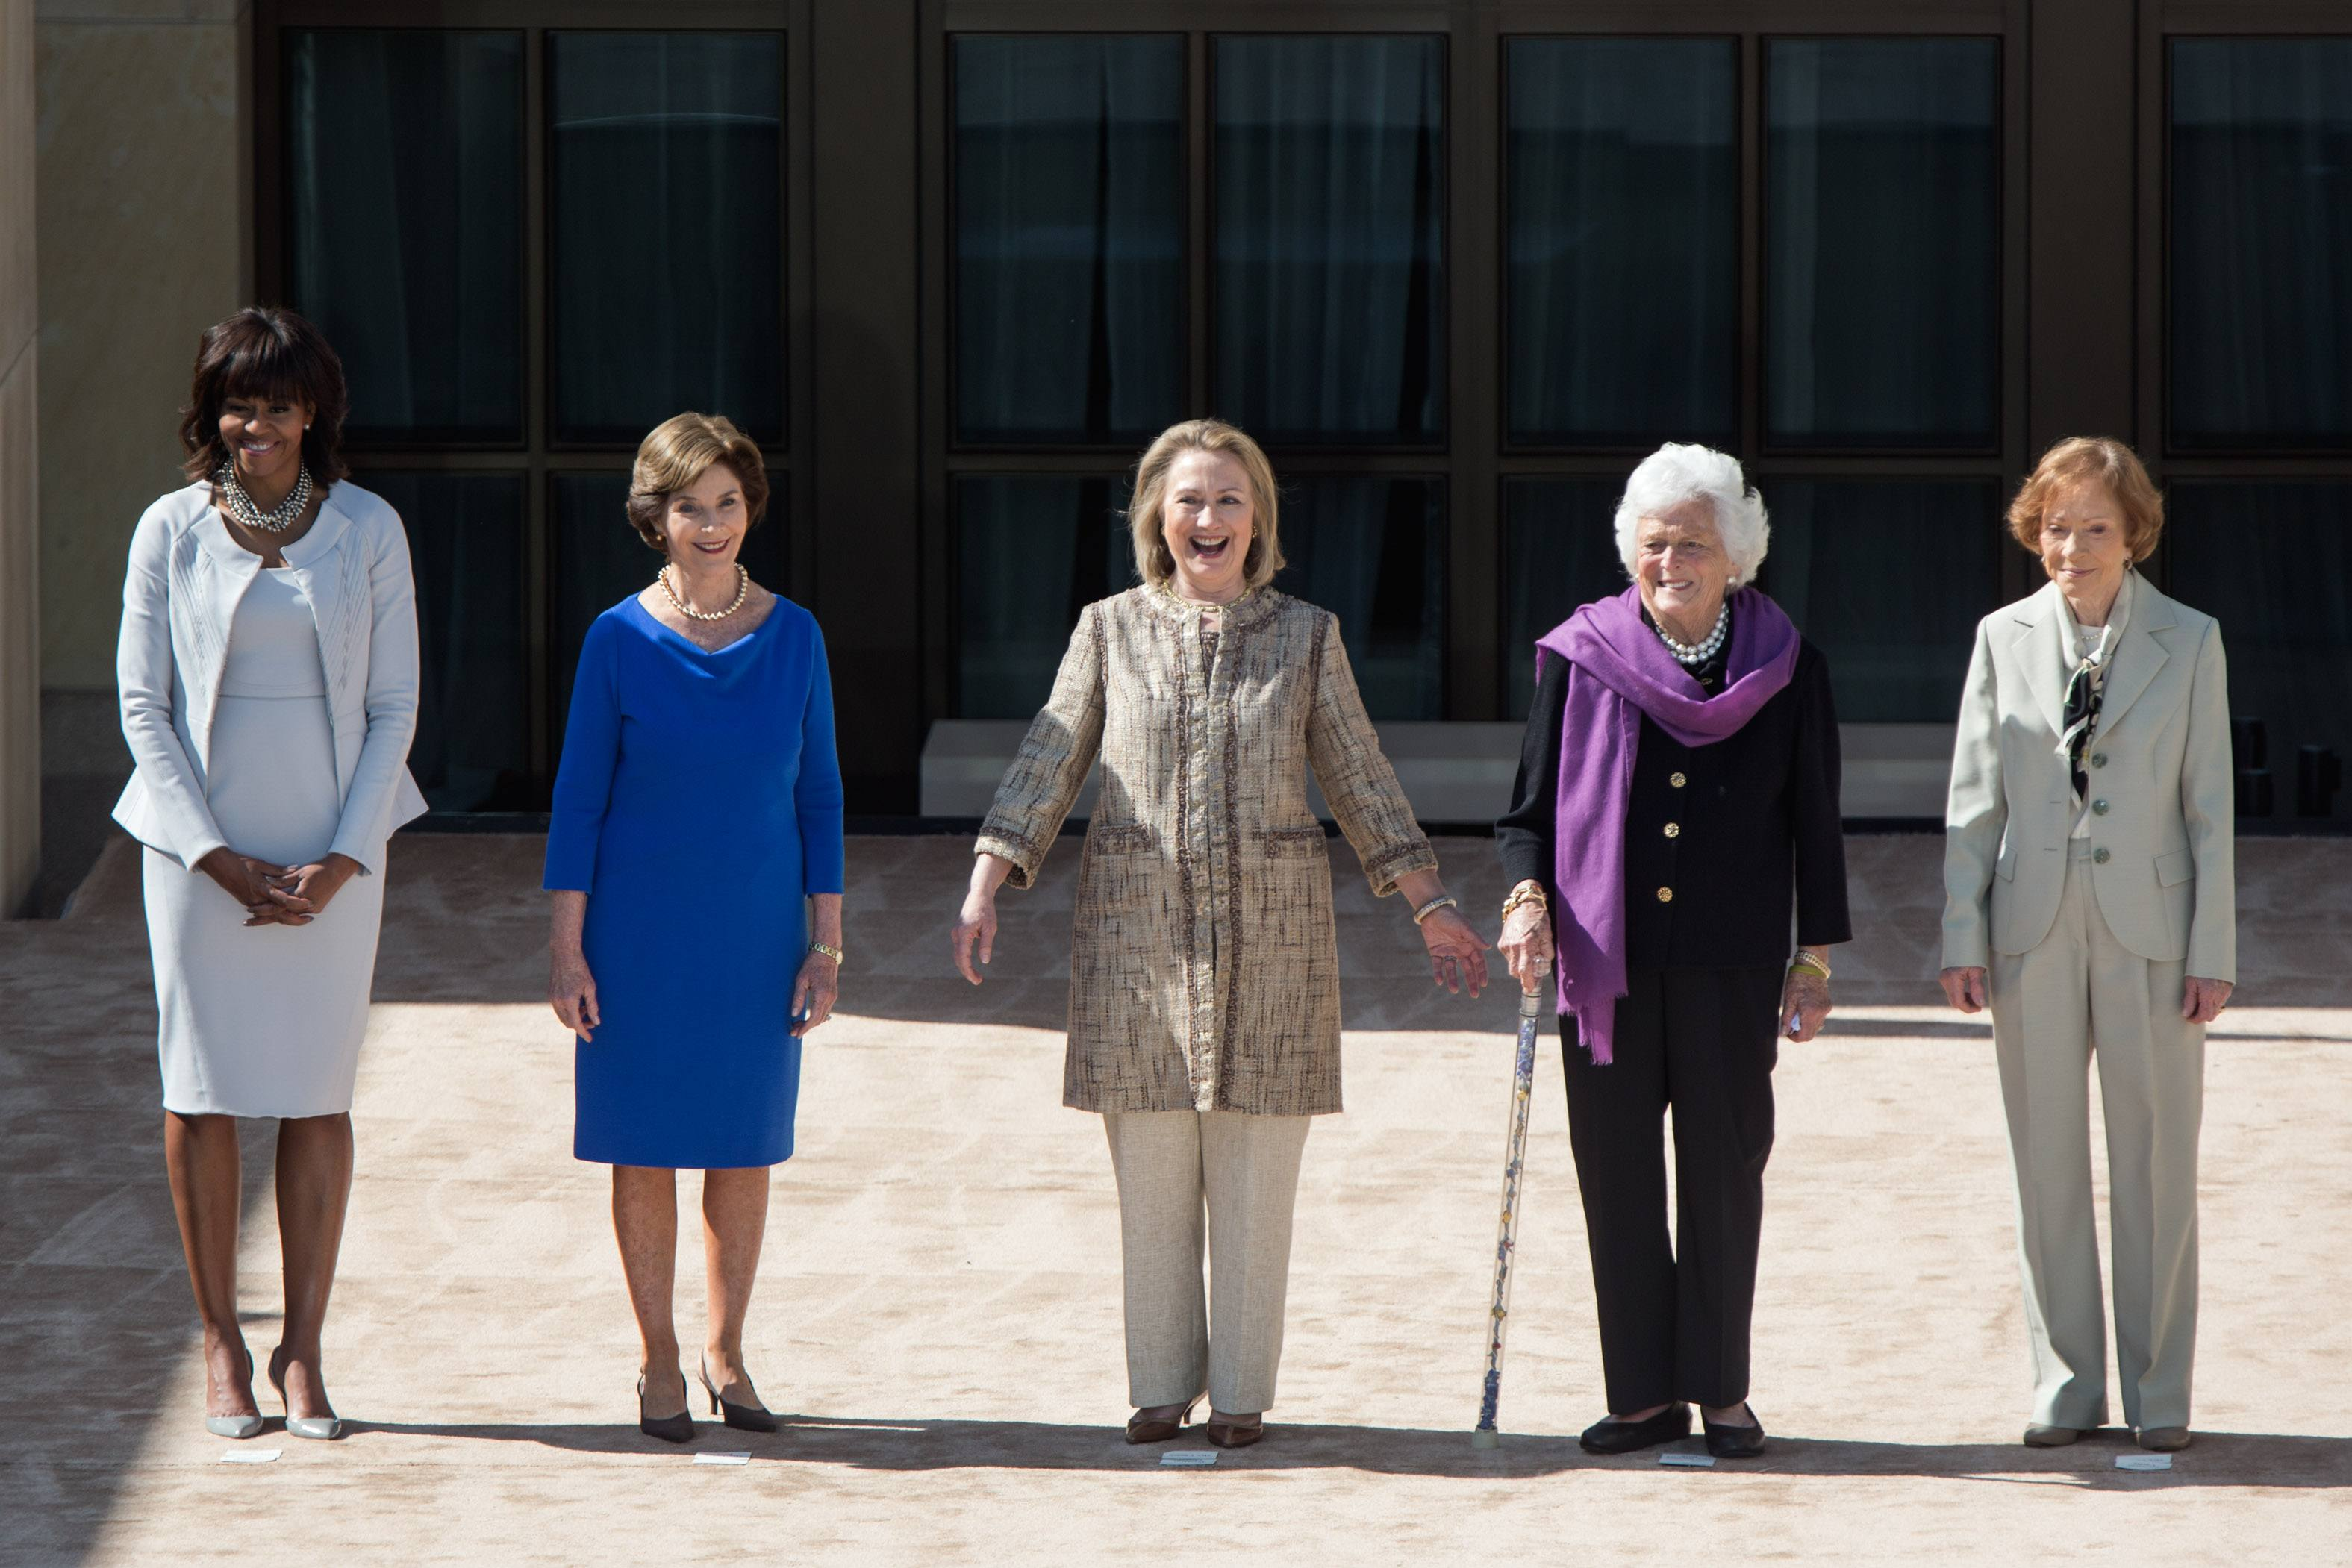 First Lady Michelle Obama pauses with former First Ladies Laura Bush, Hillary Rodham Clinton, Barbara Bush, and Rosalynn Carter during the dedication of the George W. Bush Presidential Library and Museum on the campus of Southern Methodist University in Dallas, Texas, April 25, 2013.